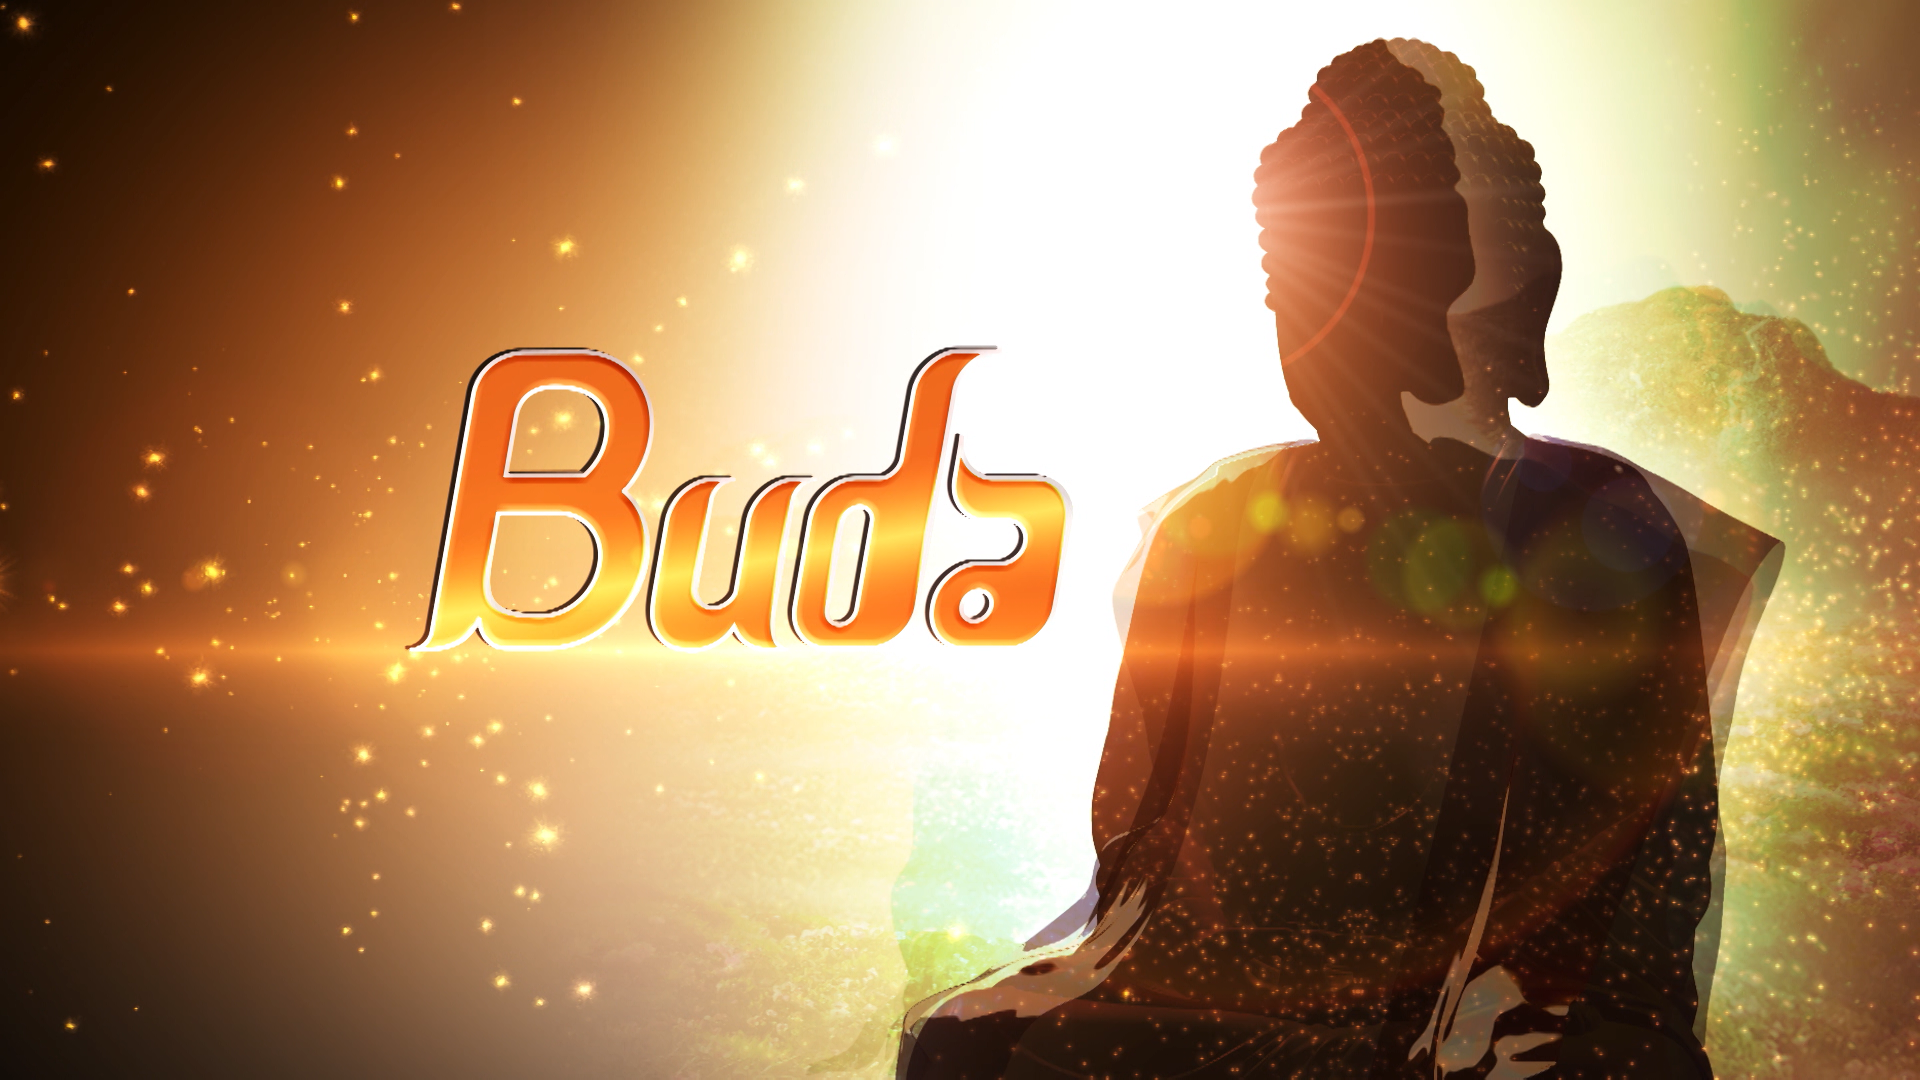 Buda: Episodio 1